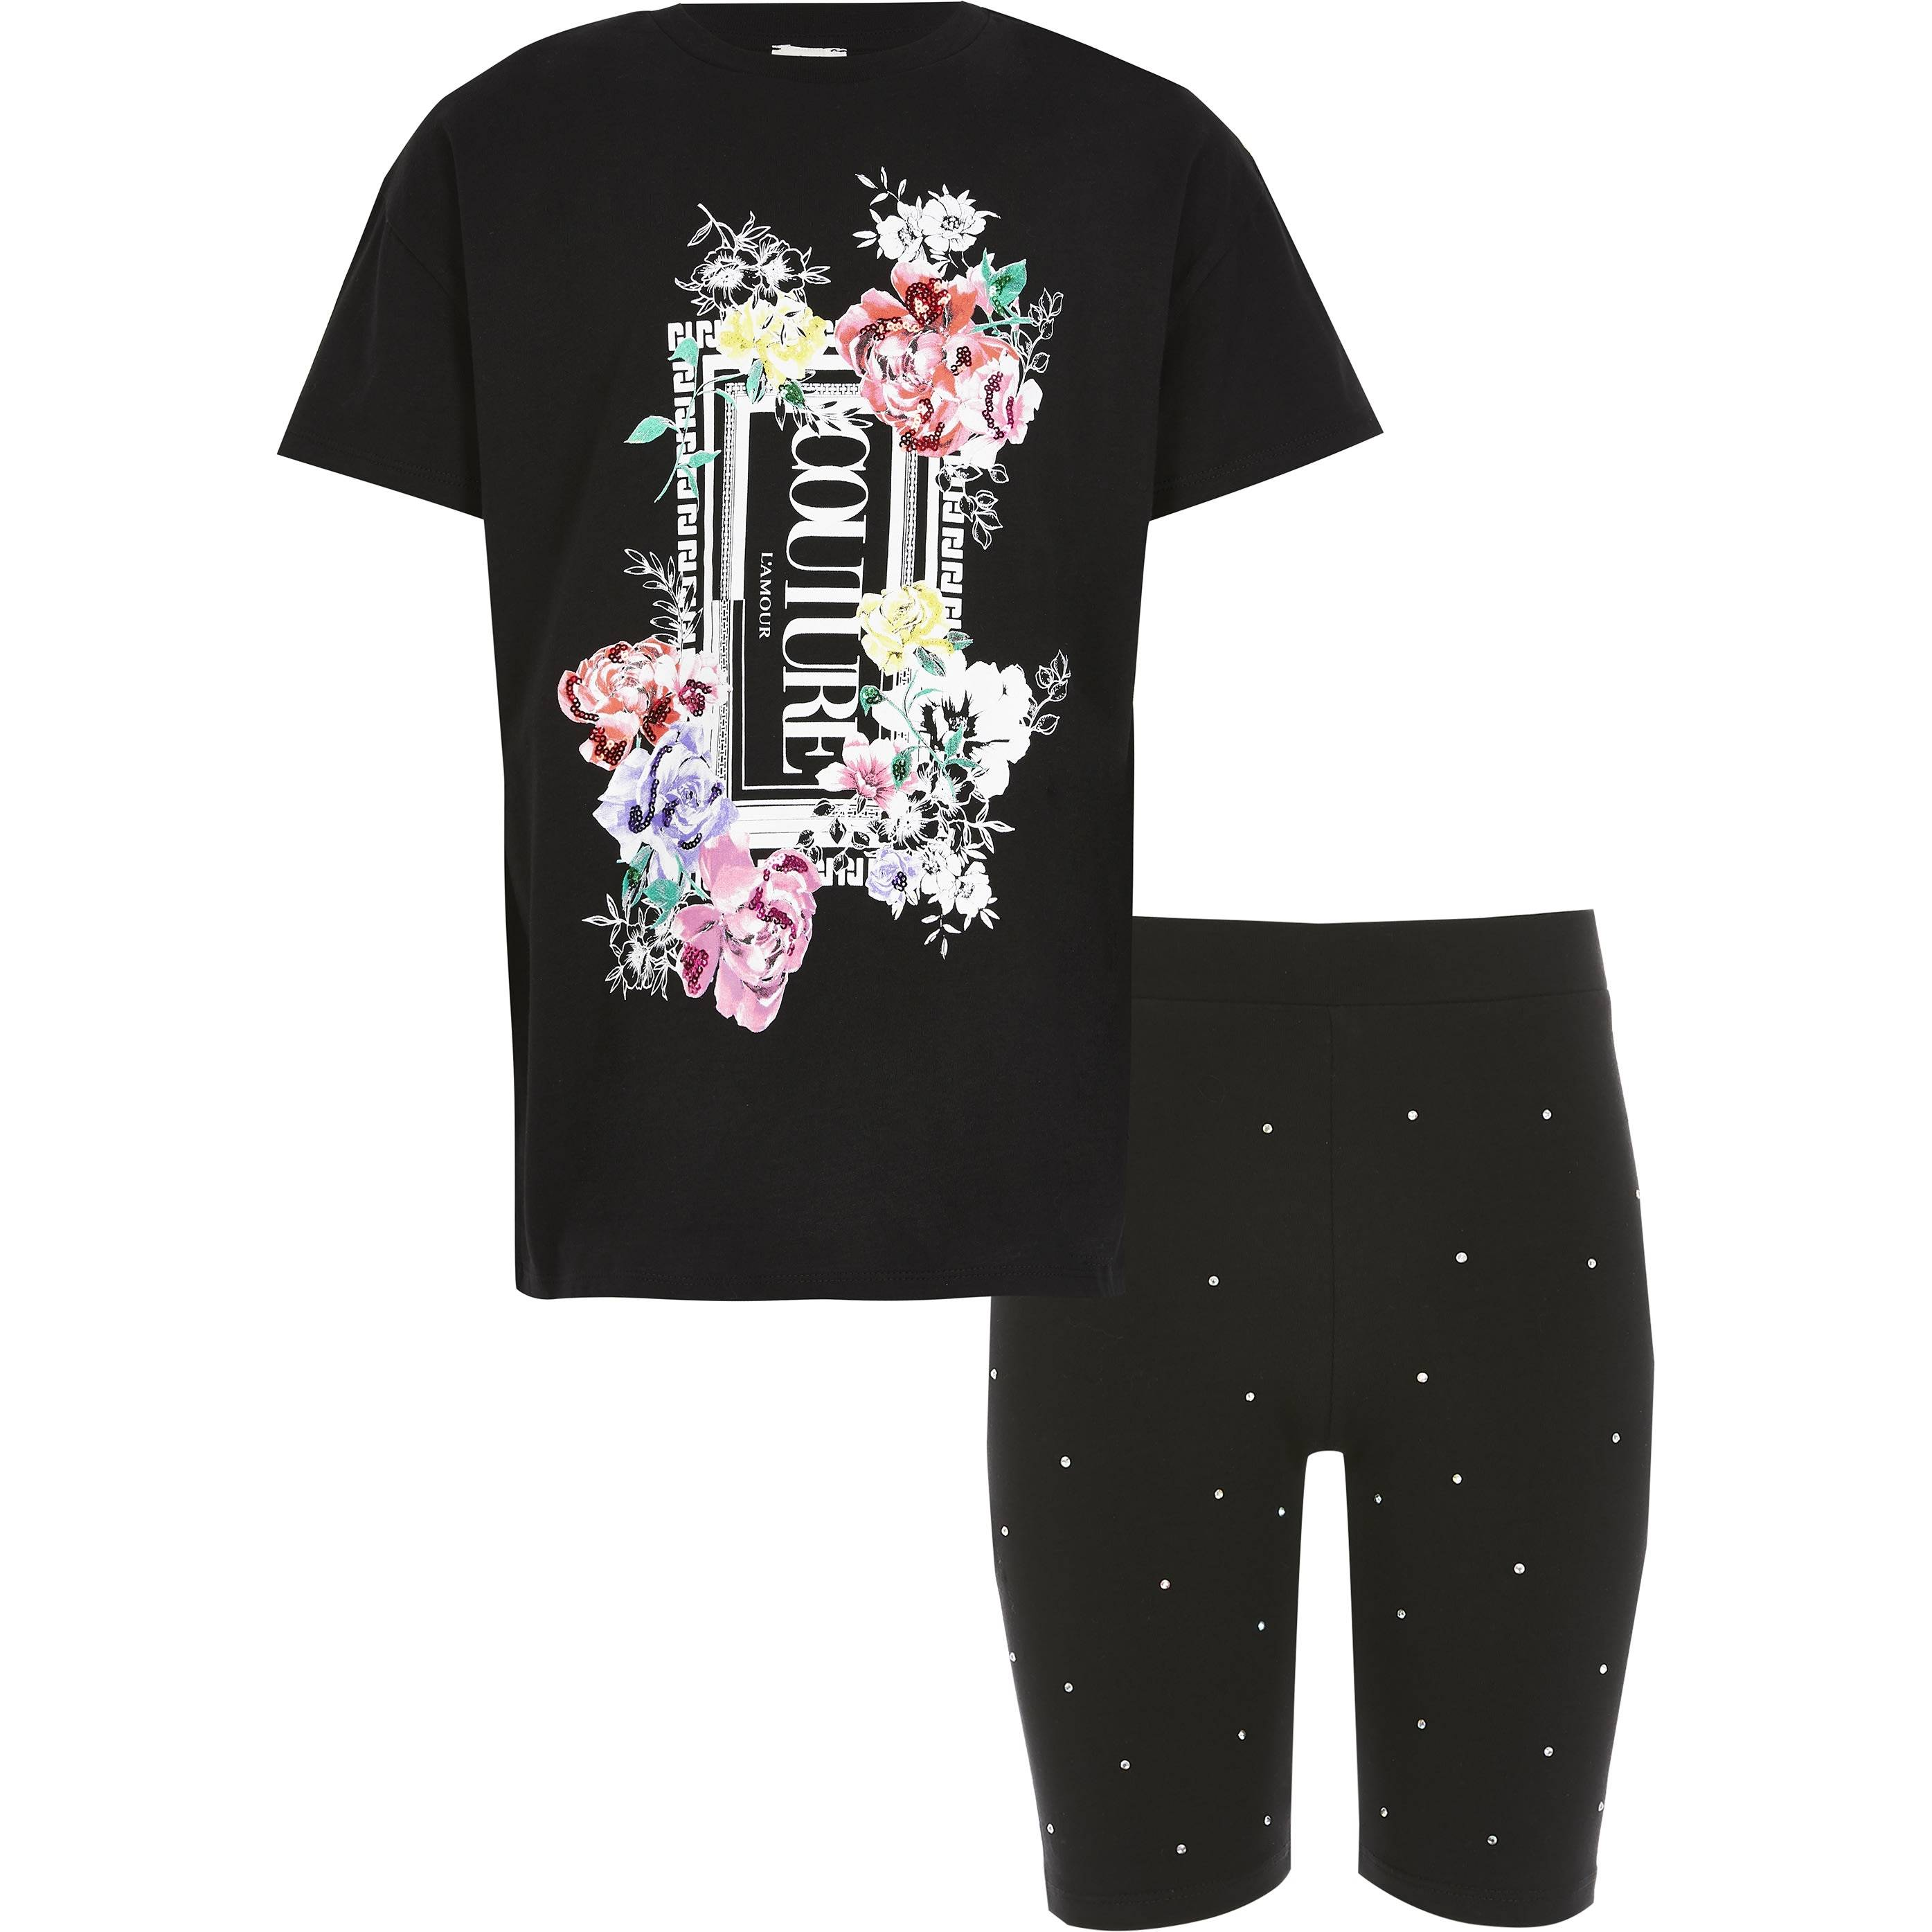 River Island Girls Black printed oversized T-shirt outfit (11-12 Yrs)